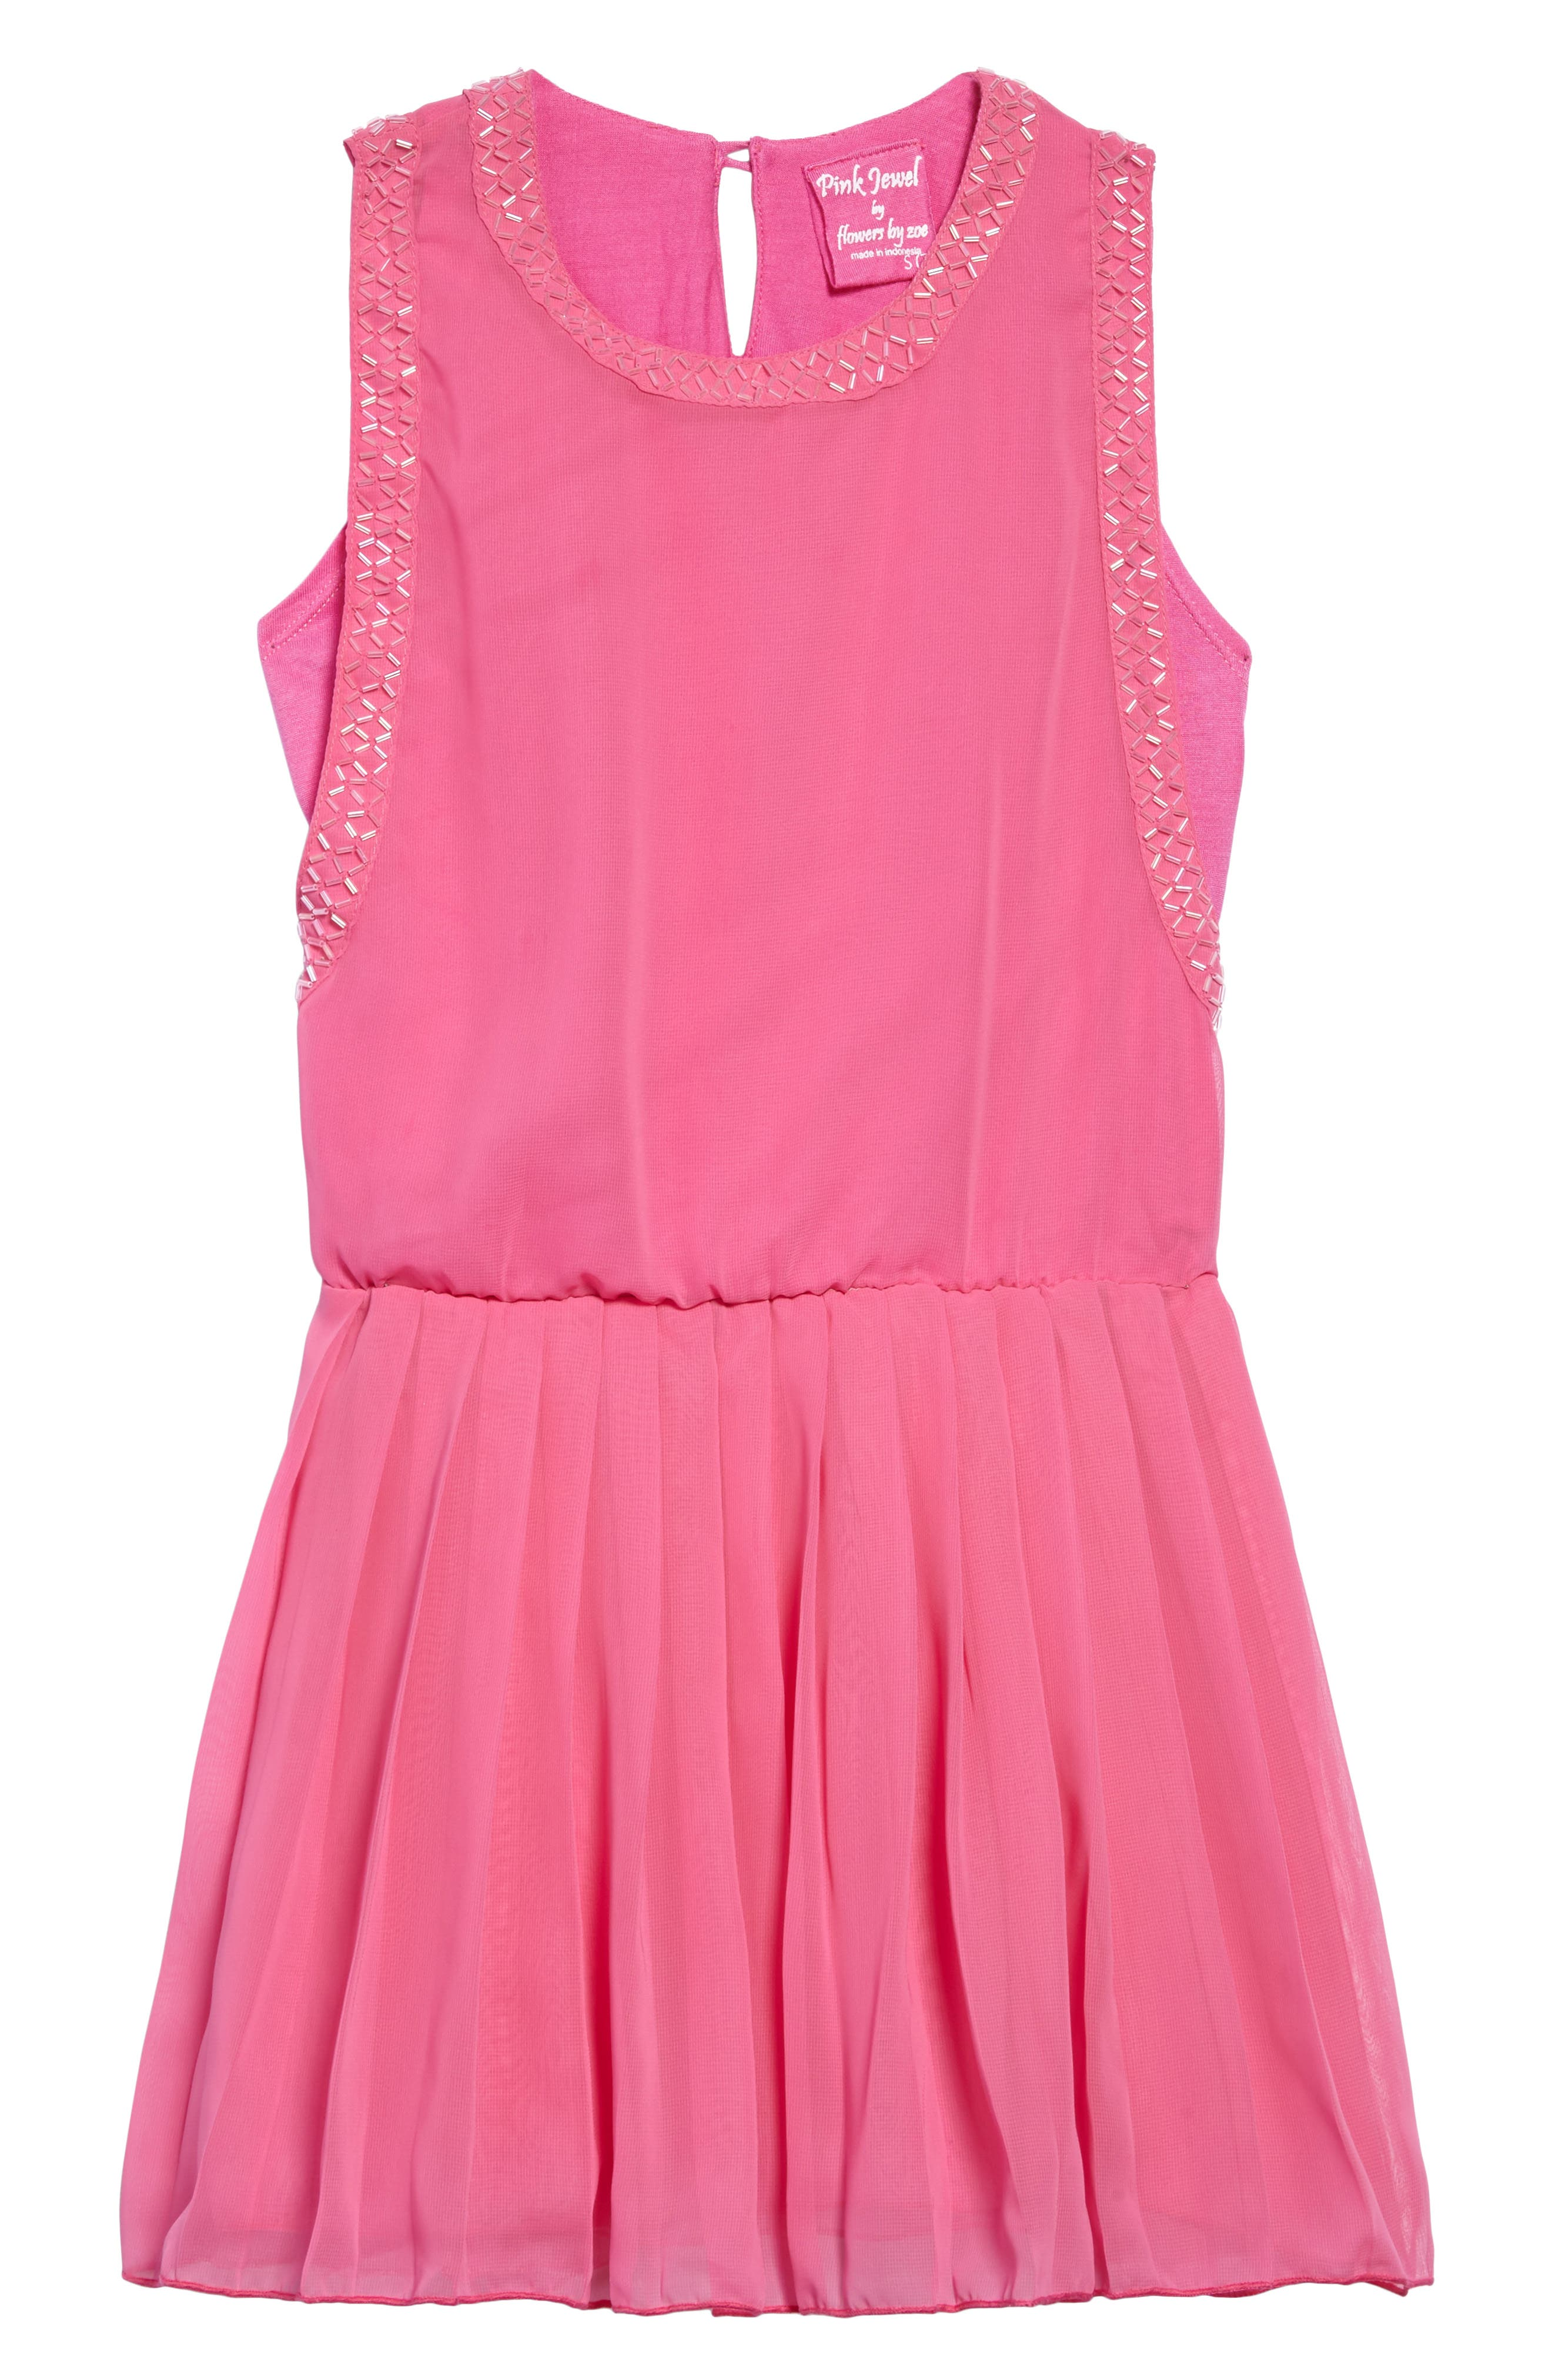 Beaded Chiffon Dress,                             Main thumbnail 1, color,                             Pink